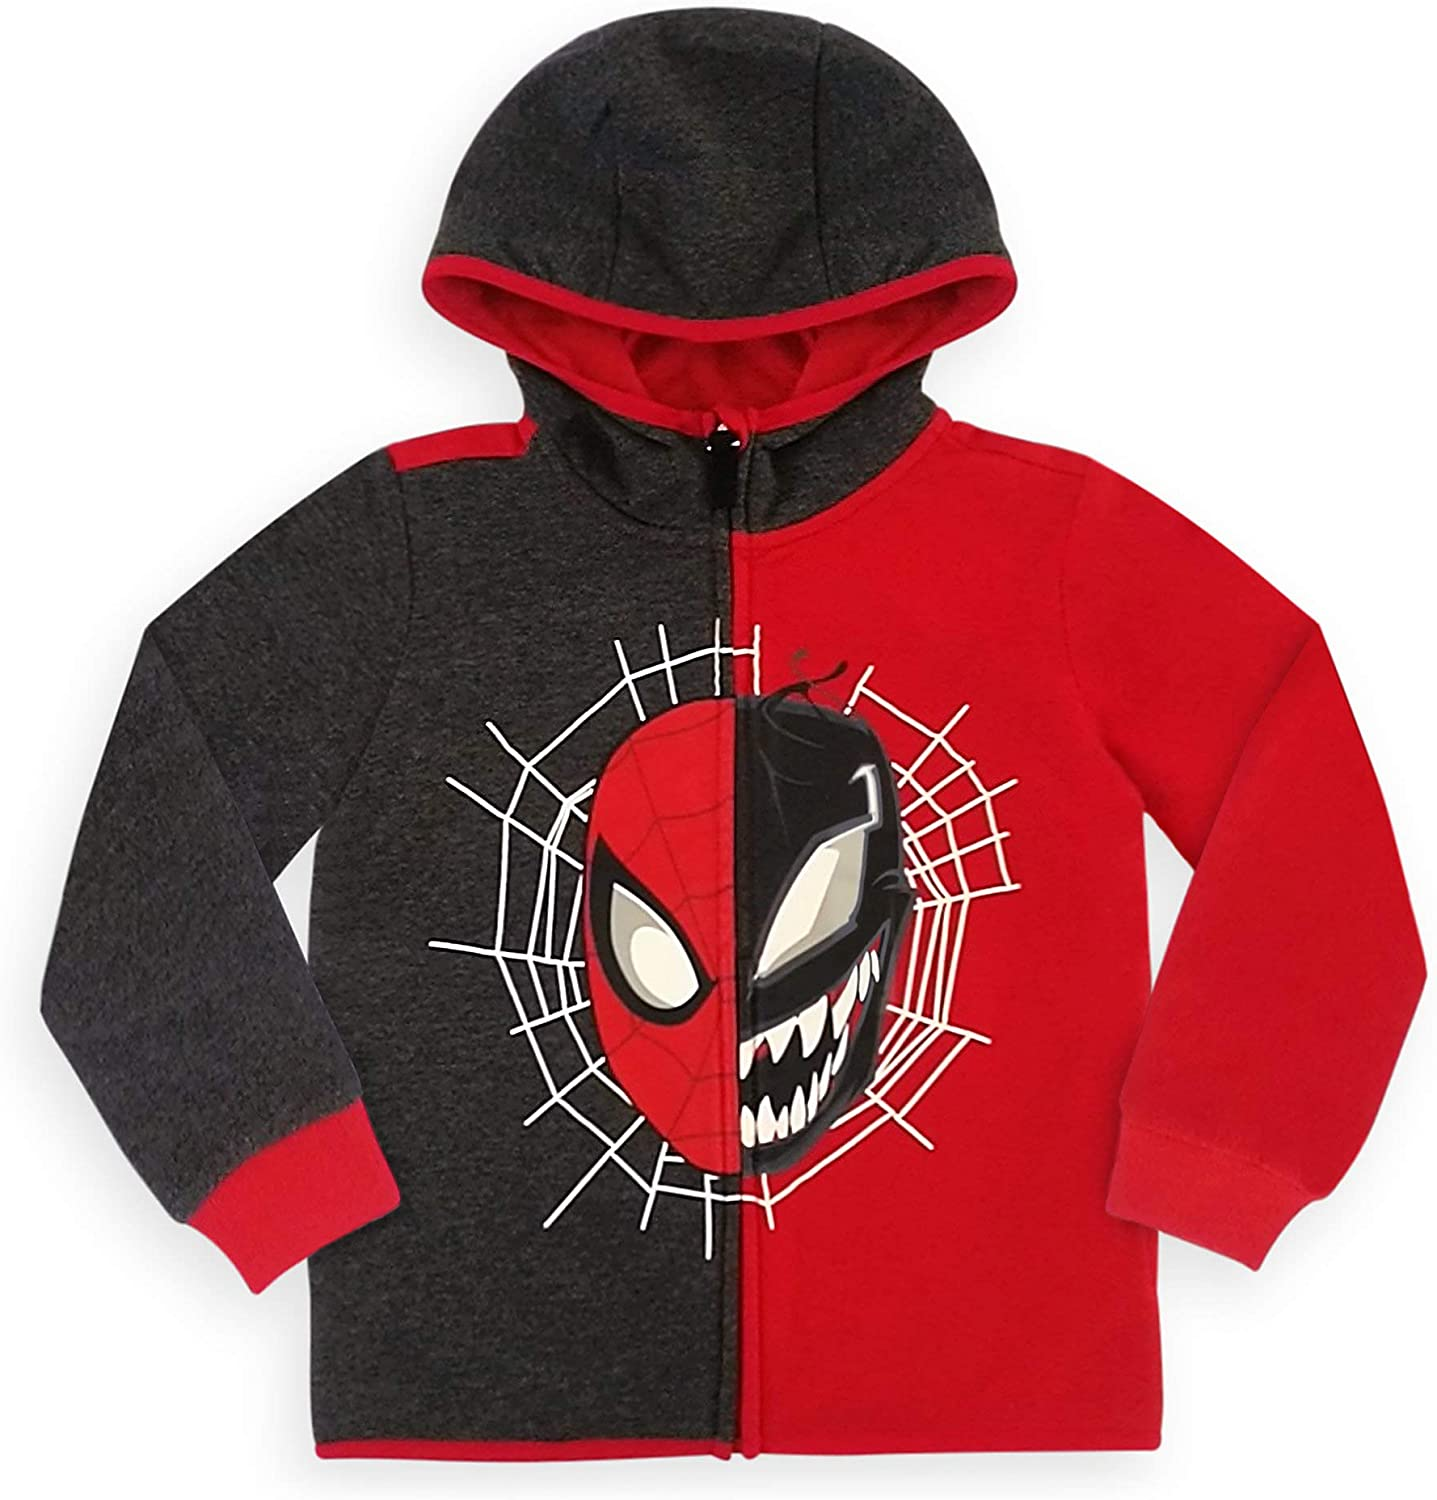 Marvel Spider-Man and Venom Clearance SALE Cheap bargain Limited time Hoodie for Boys Zip